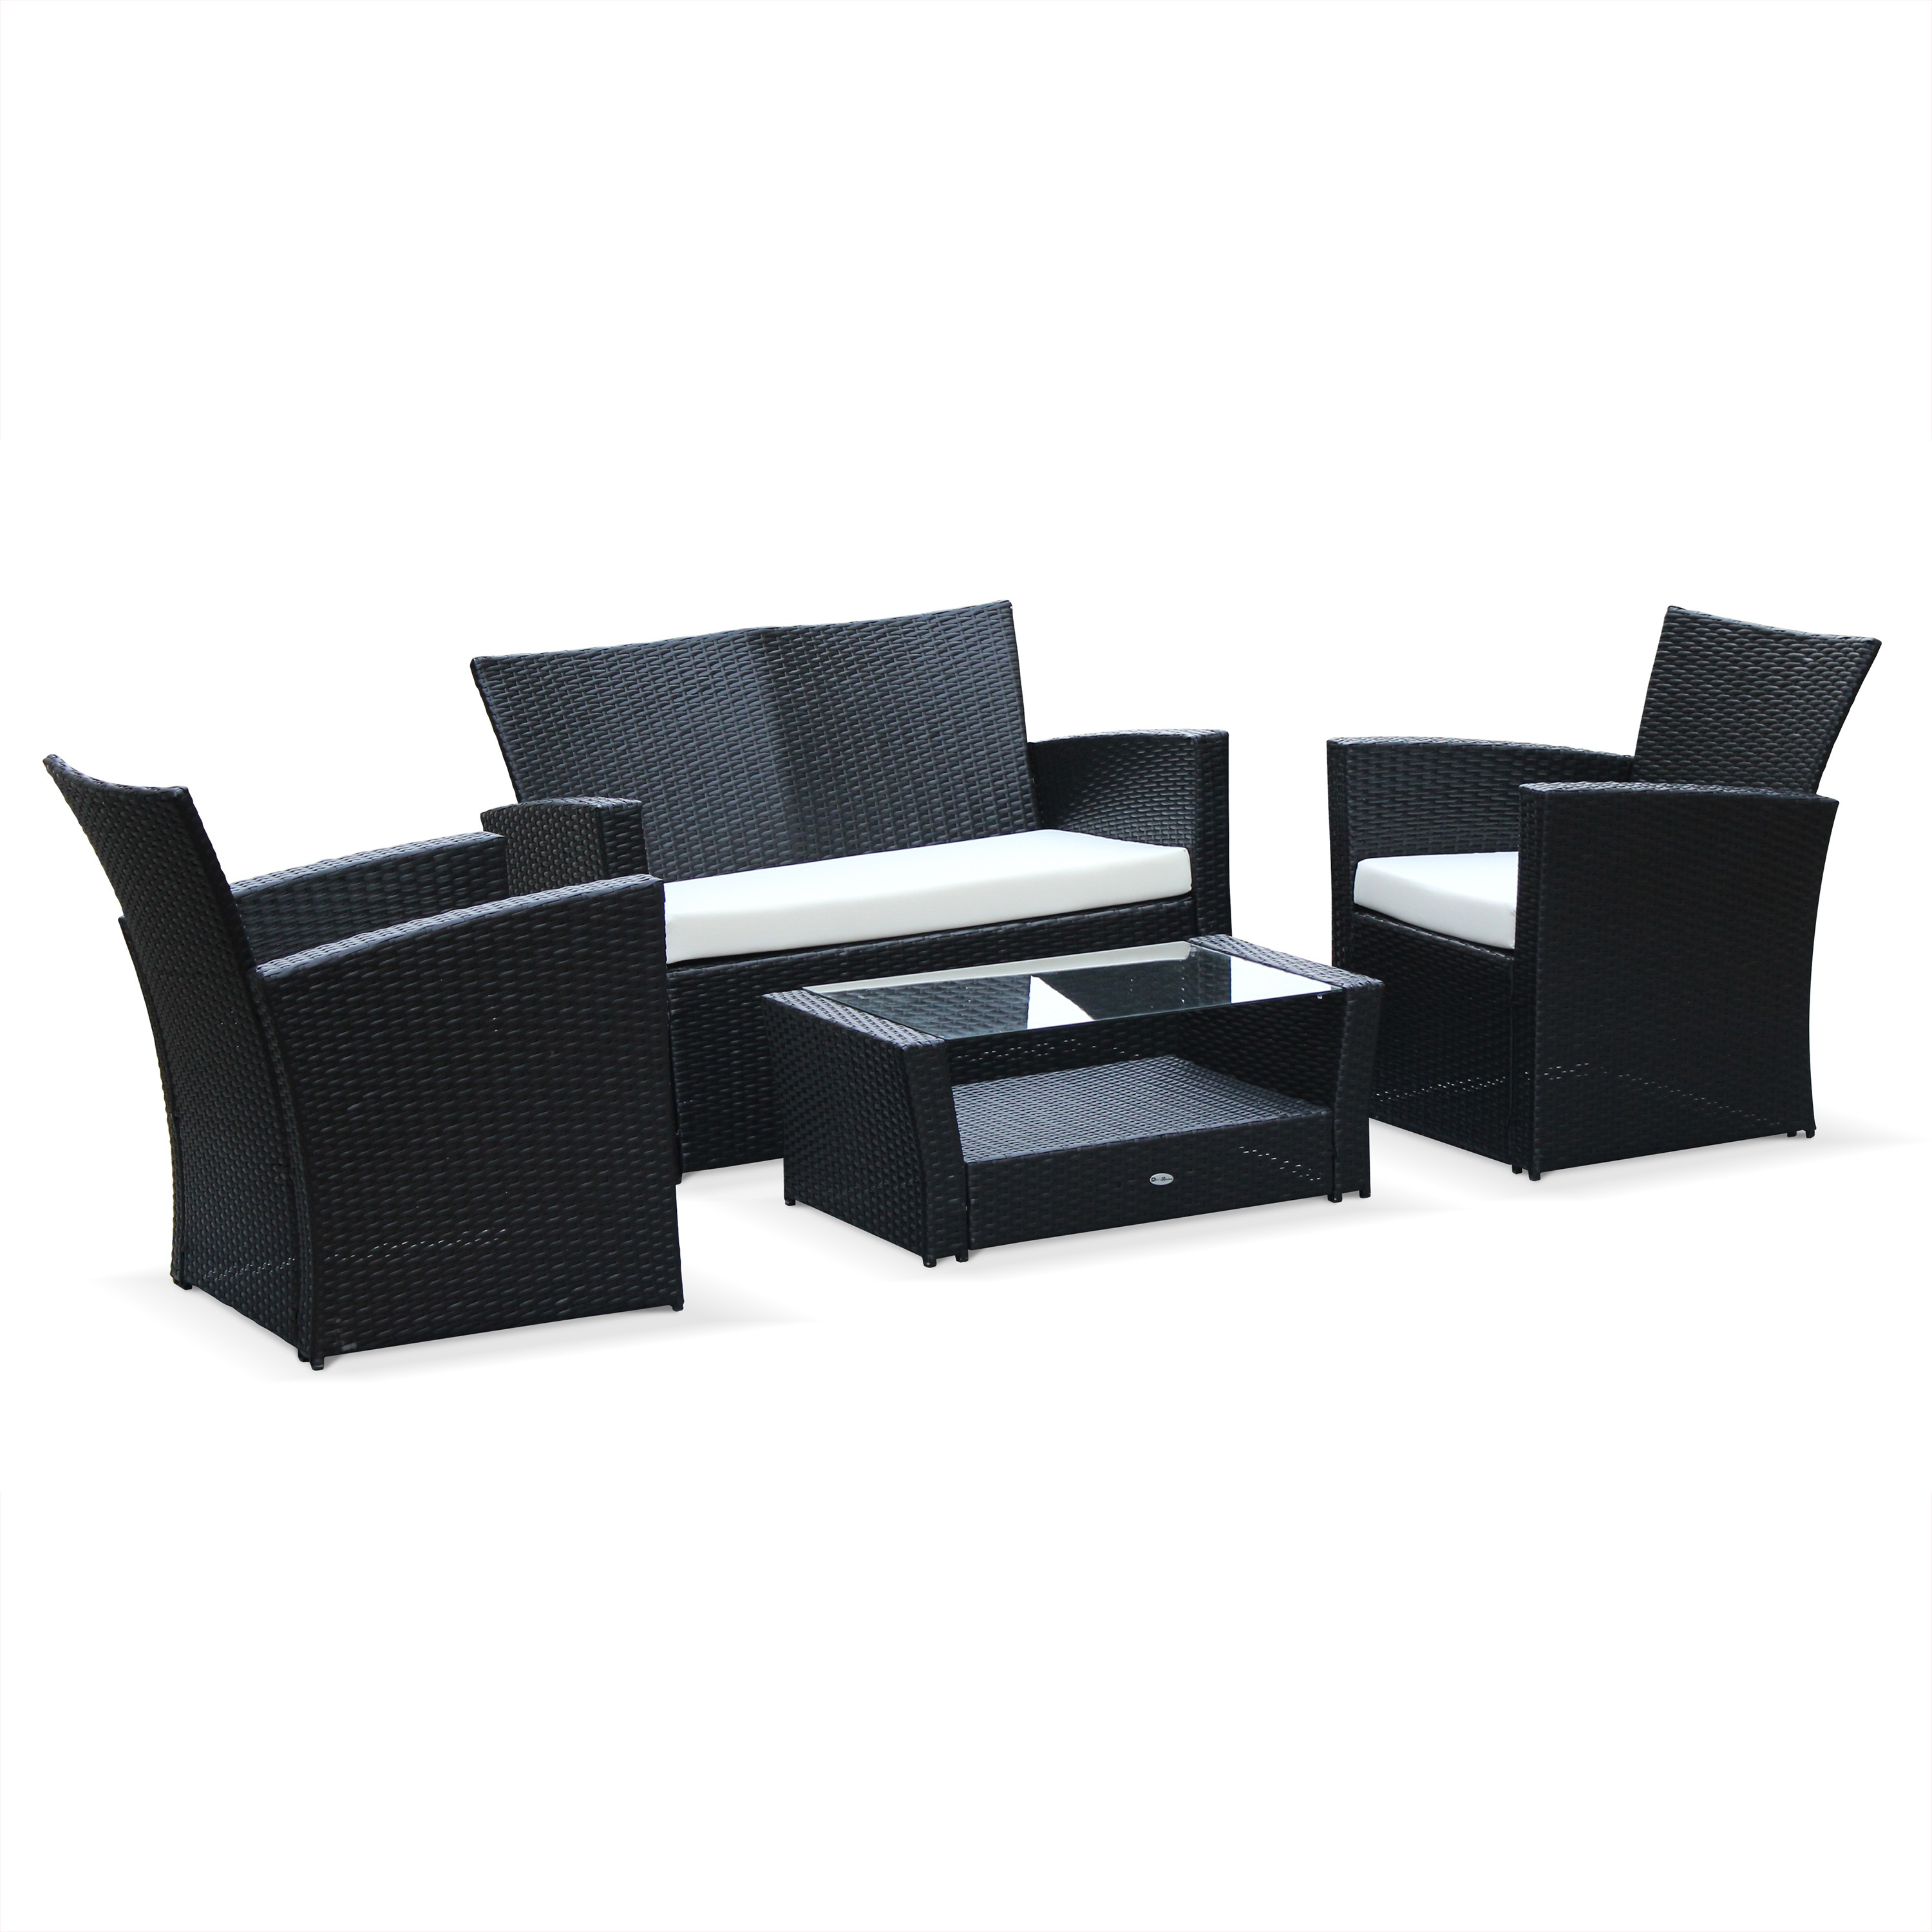 soldes salon de jardin r sine tress e gris 14 id es de d coration int rieure french decor. Black Bedroom Furniture Sets. Home Design Ideas